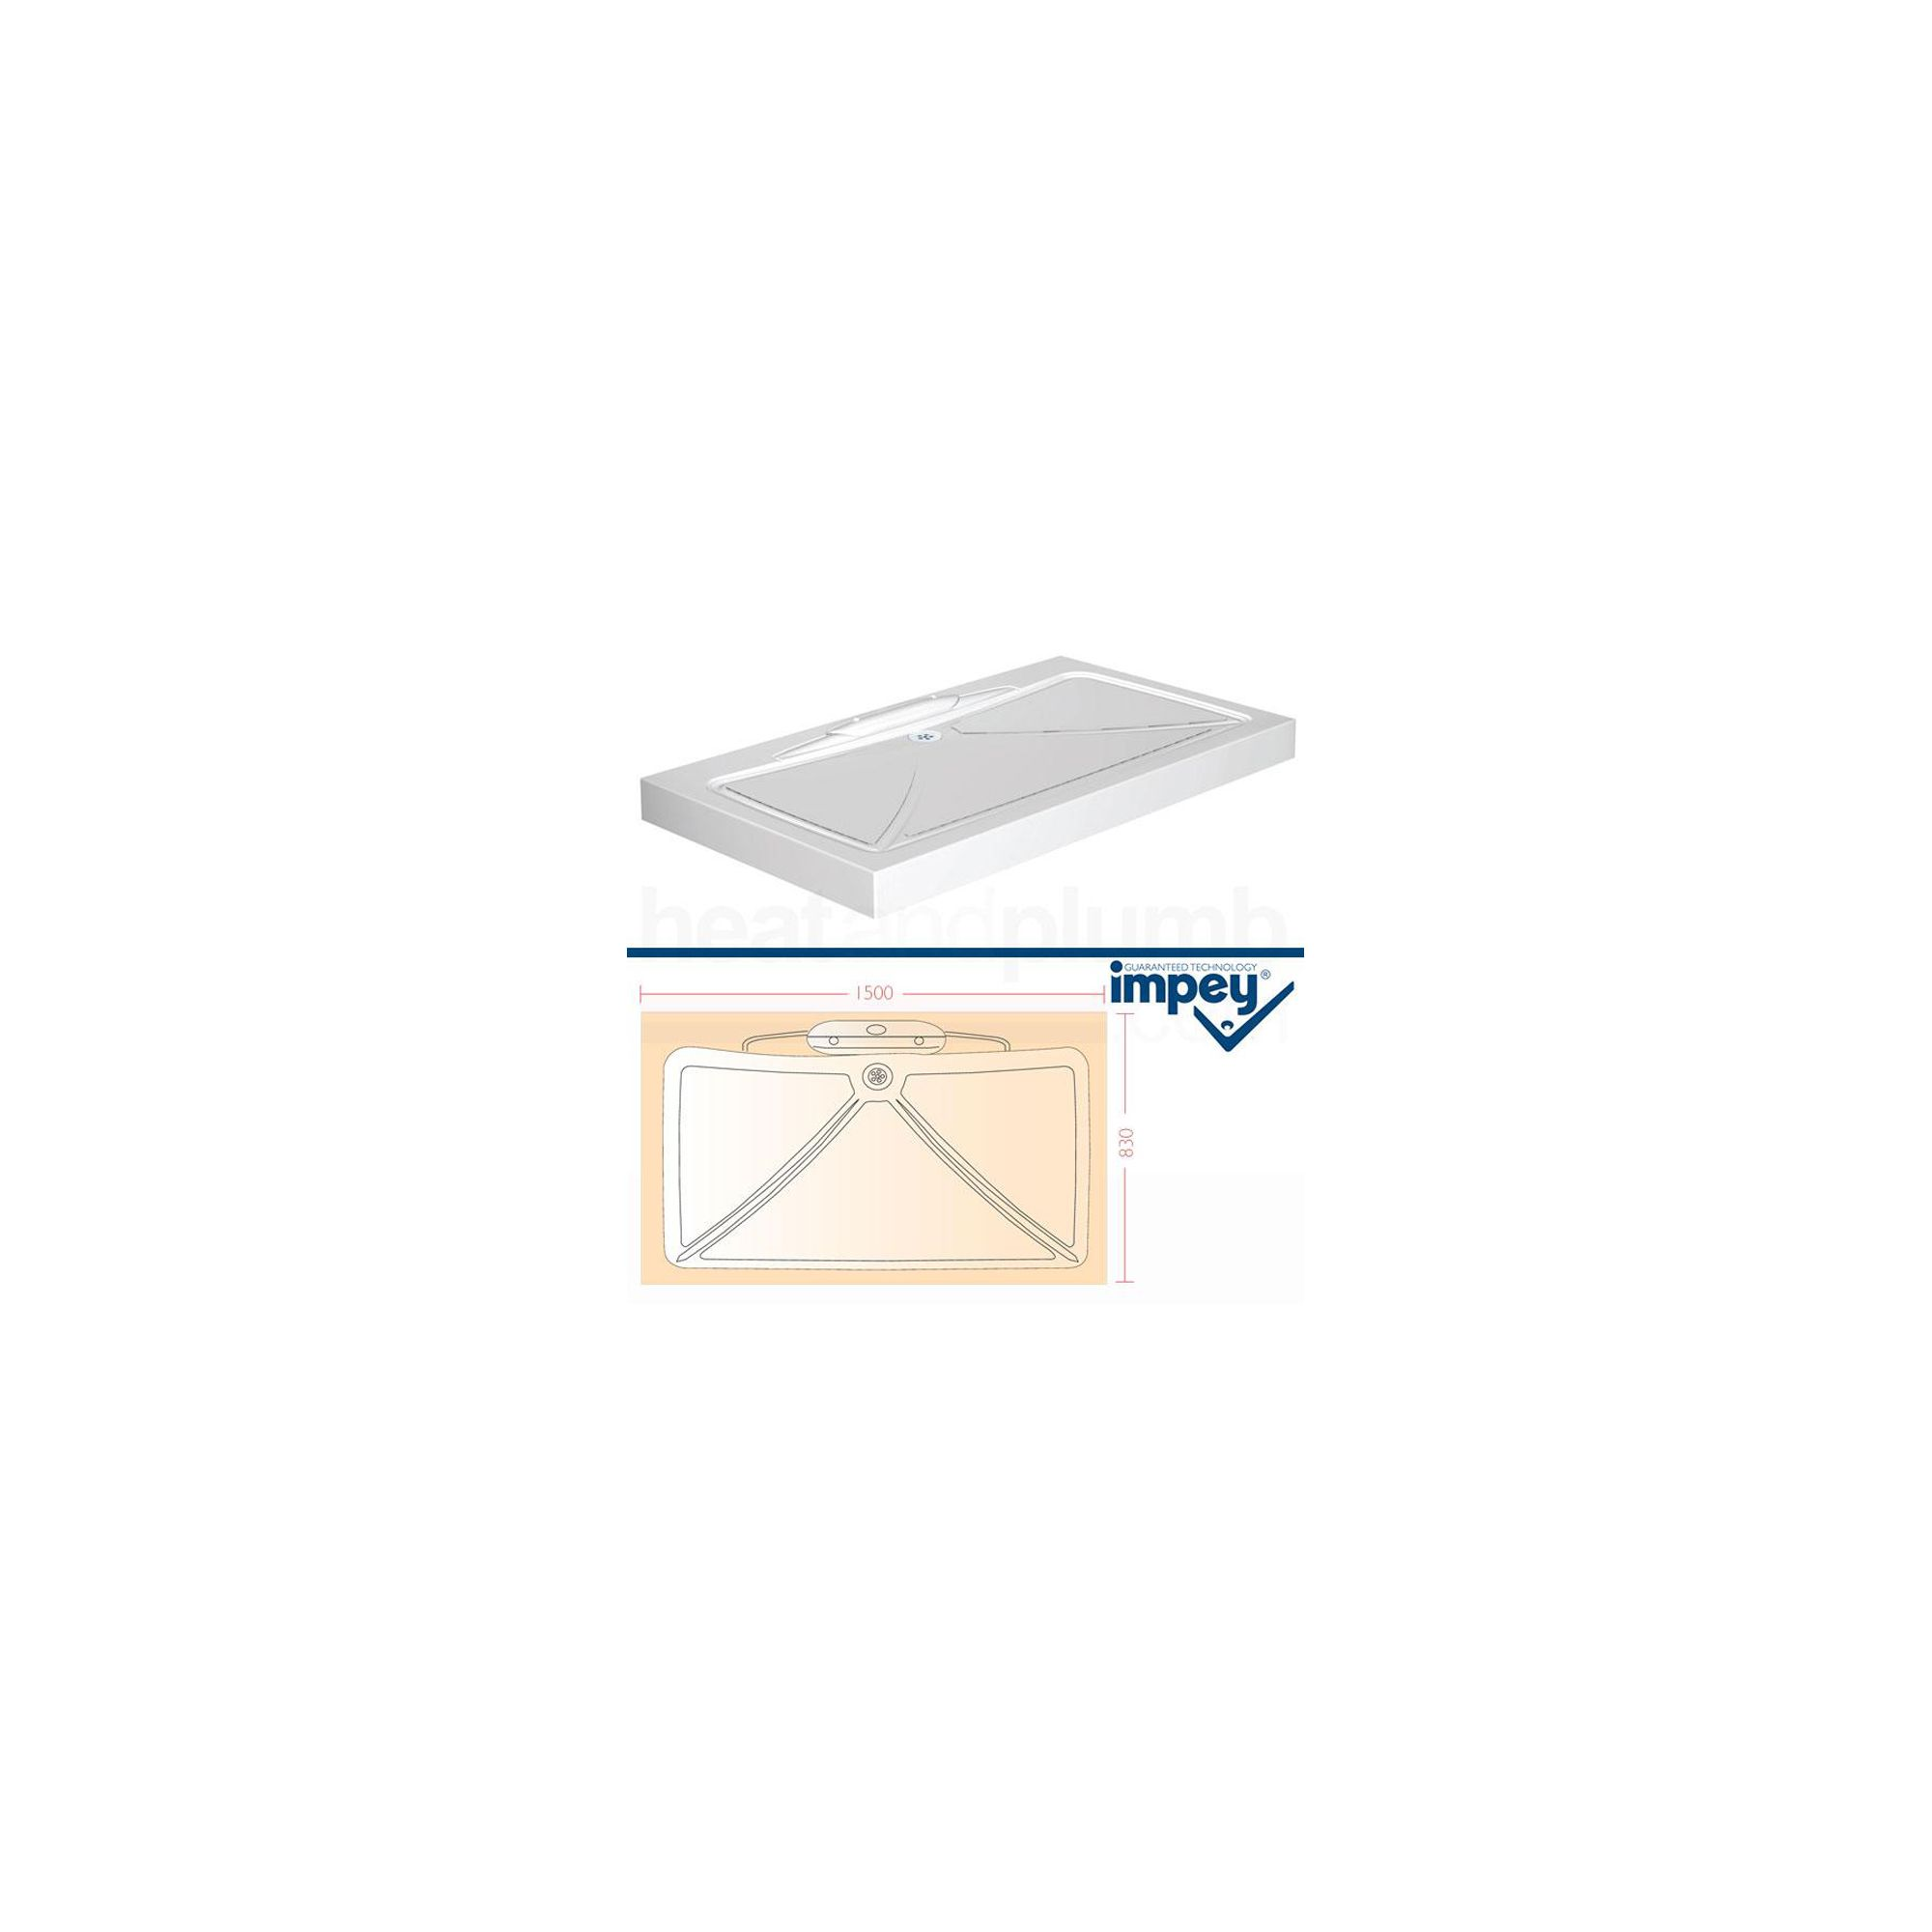 Impey Mendip Shower Tray 1500mm x 830mm at Tesco Direct